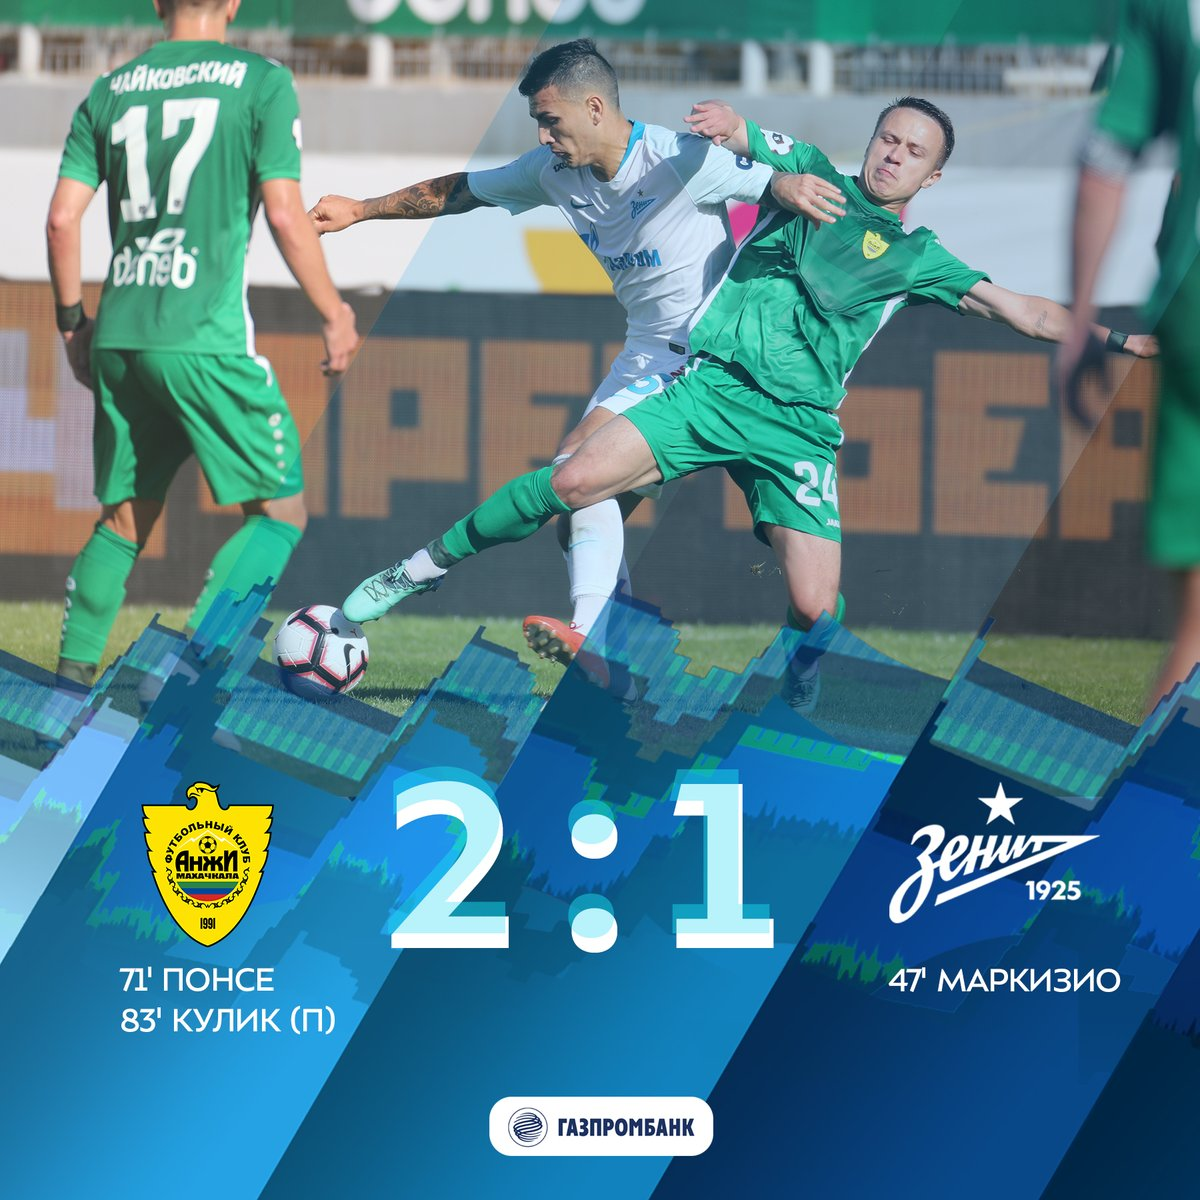 Anzhi 2-1 Zenit: Match Report